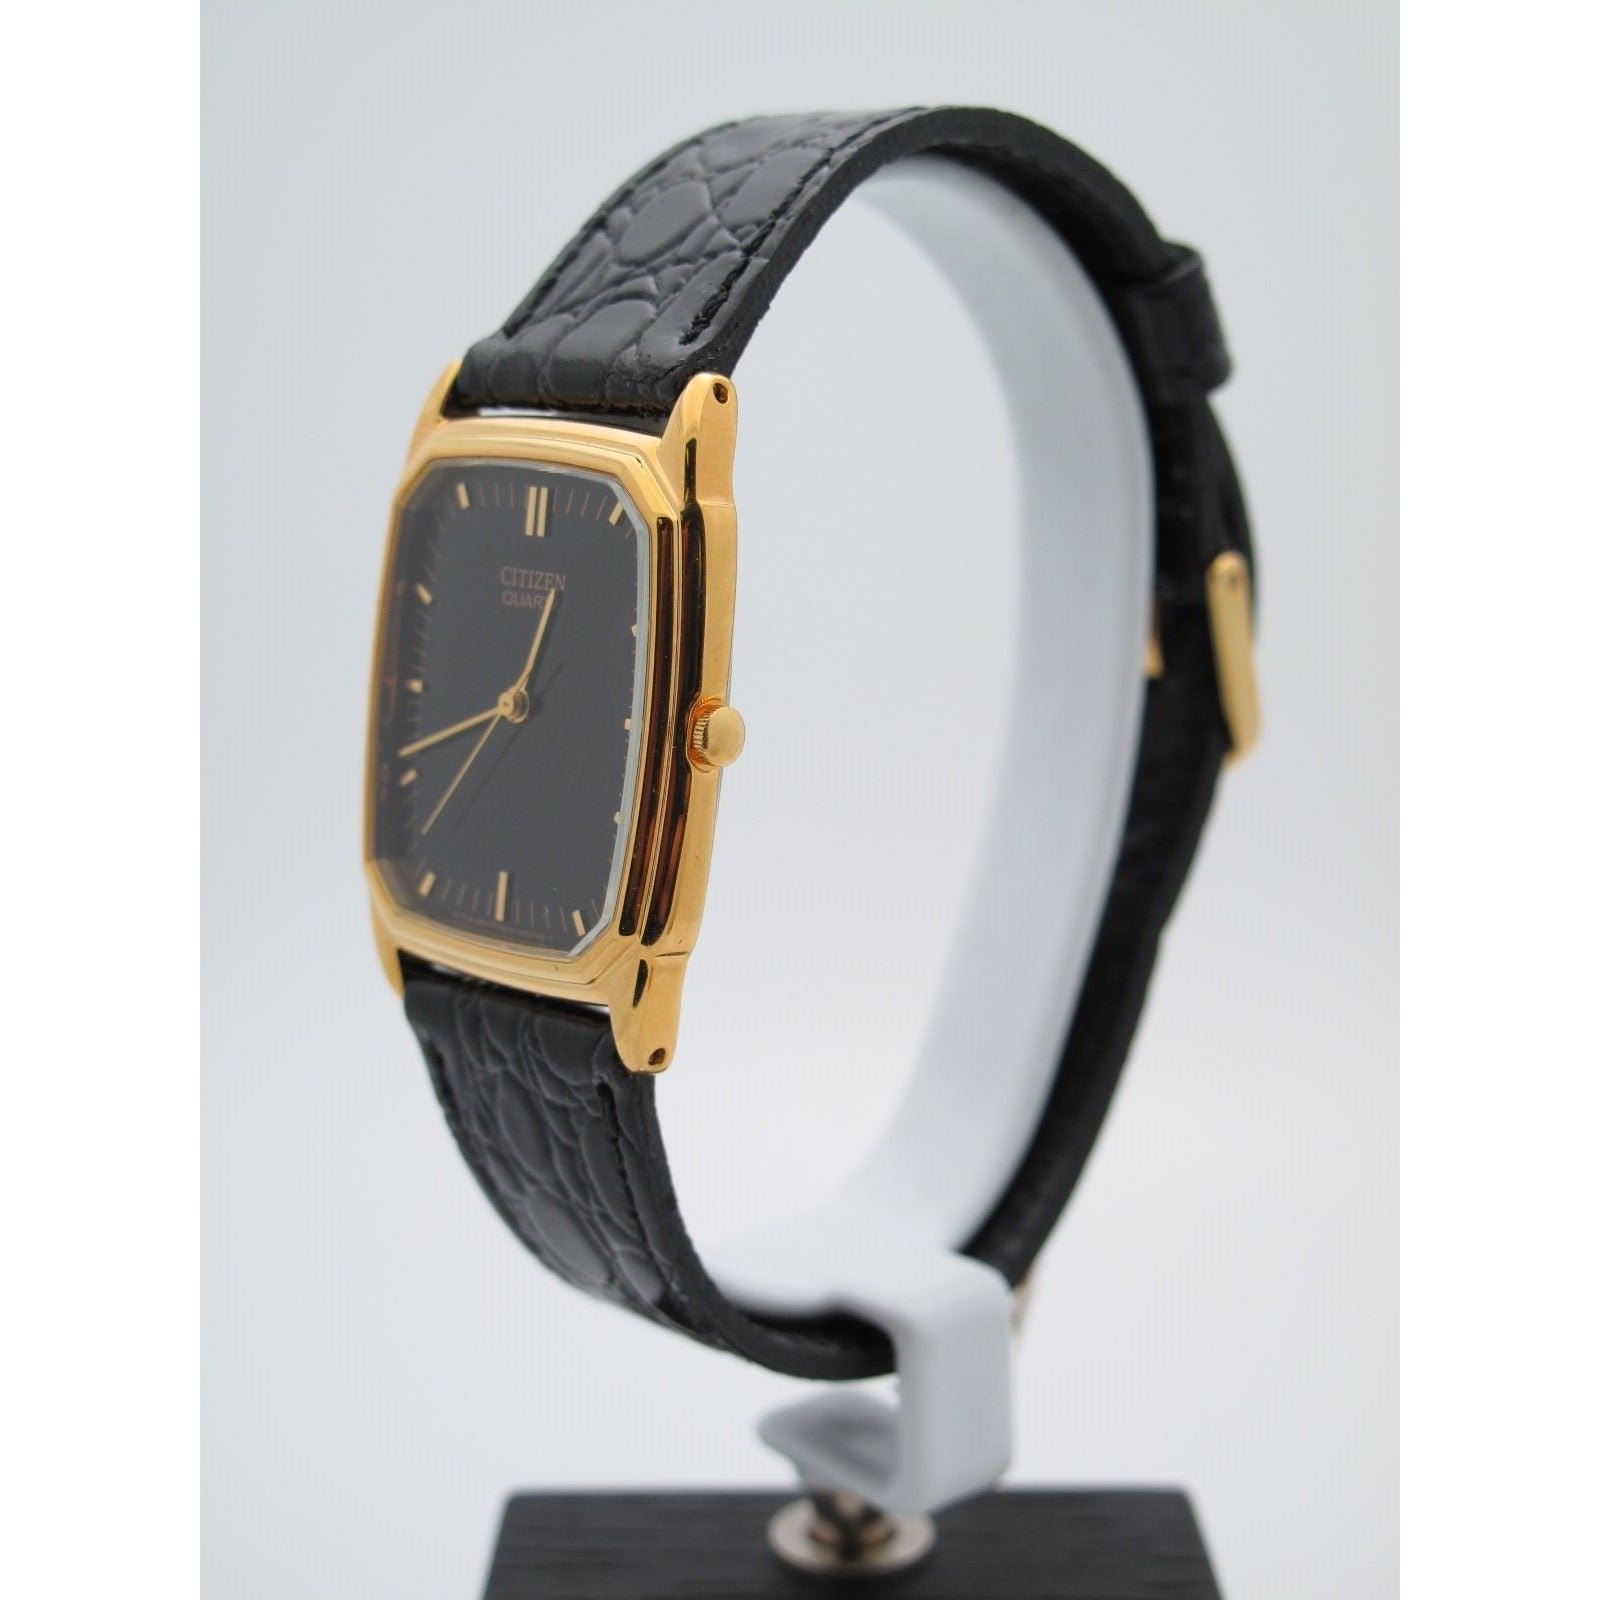 Citizen Gold Stainless Steel Black Dial Black Leather Band Watch 6031 R06586